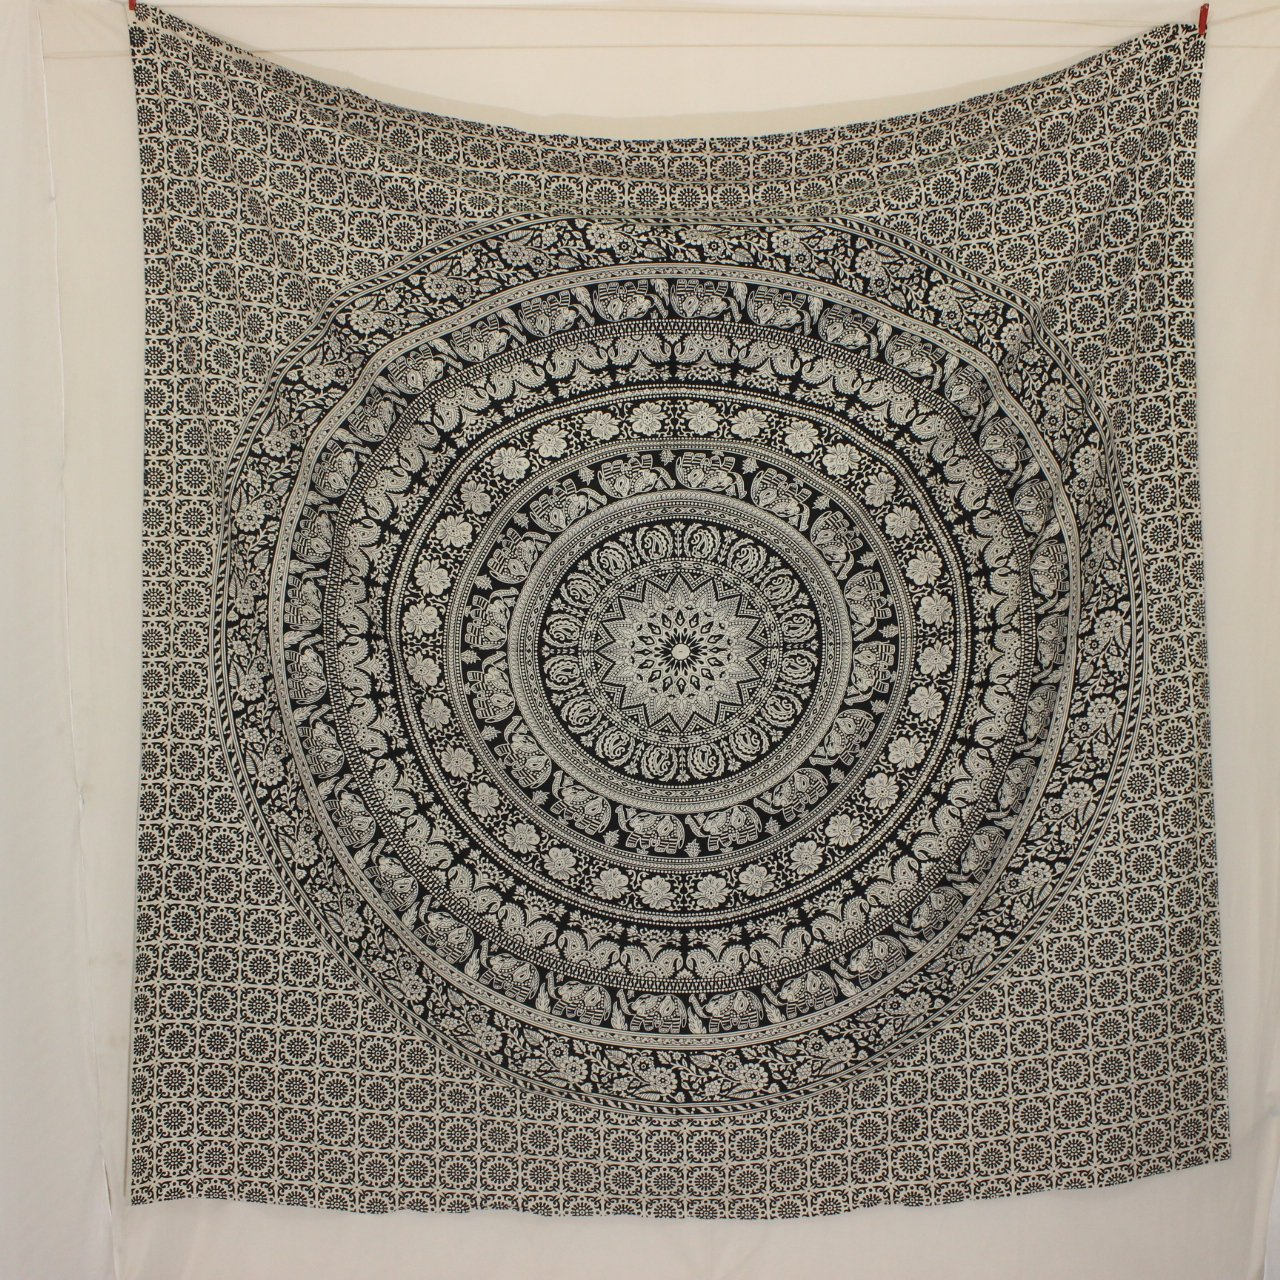 Black and white Tapestry wall hanging Elephant Wall Tapestries Cotton Tapestry fabric Mandala Tapestry bedding, floral bedspread, Wall decor